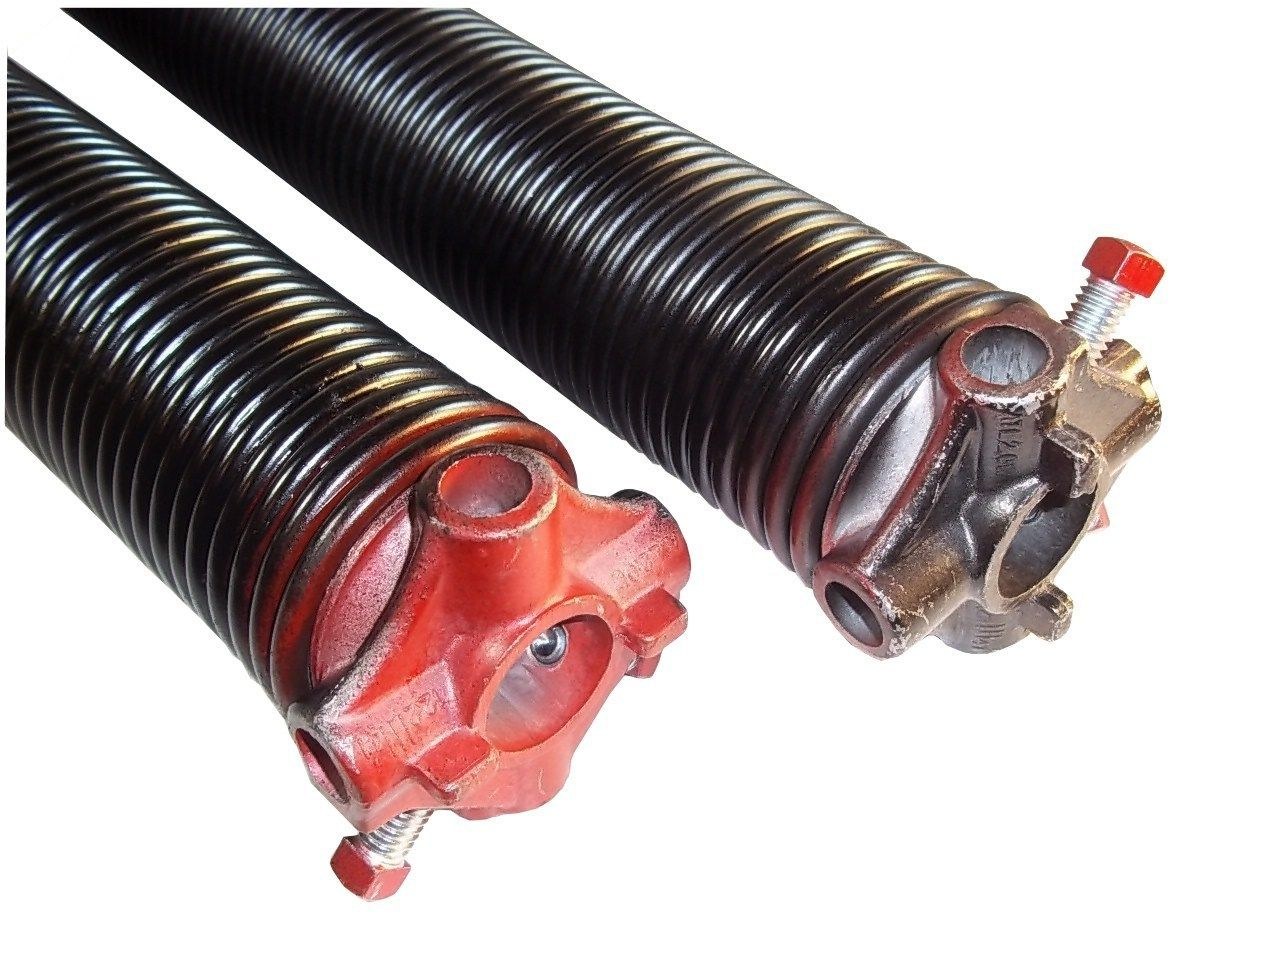 What Is The Function Of The Garage Door Torsion Springs And How To